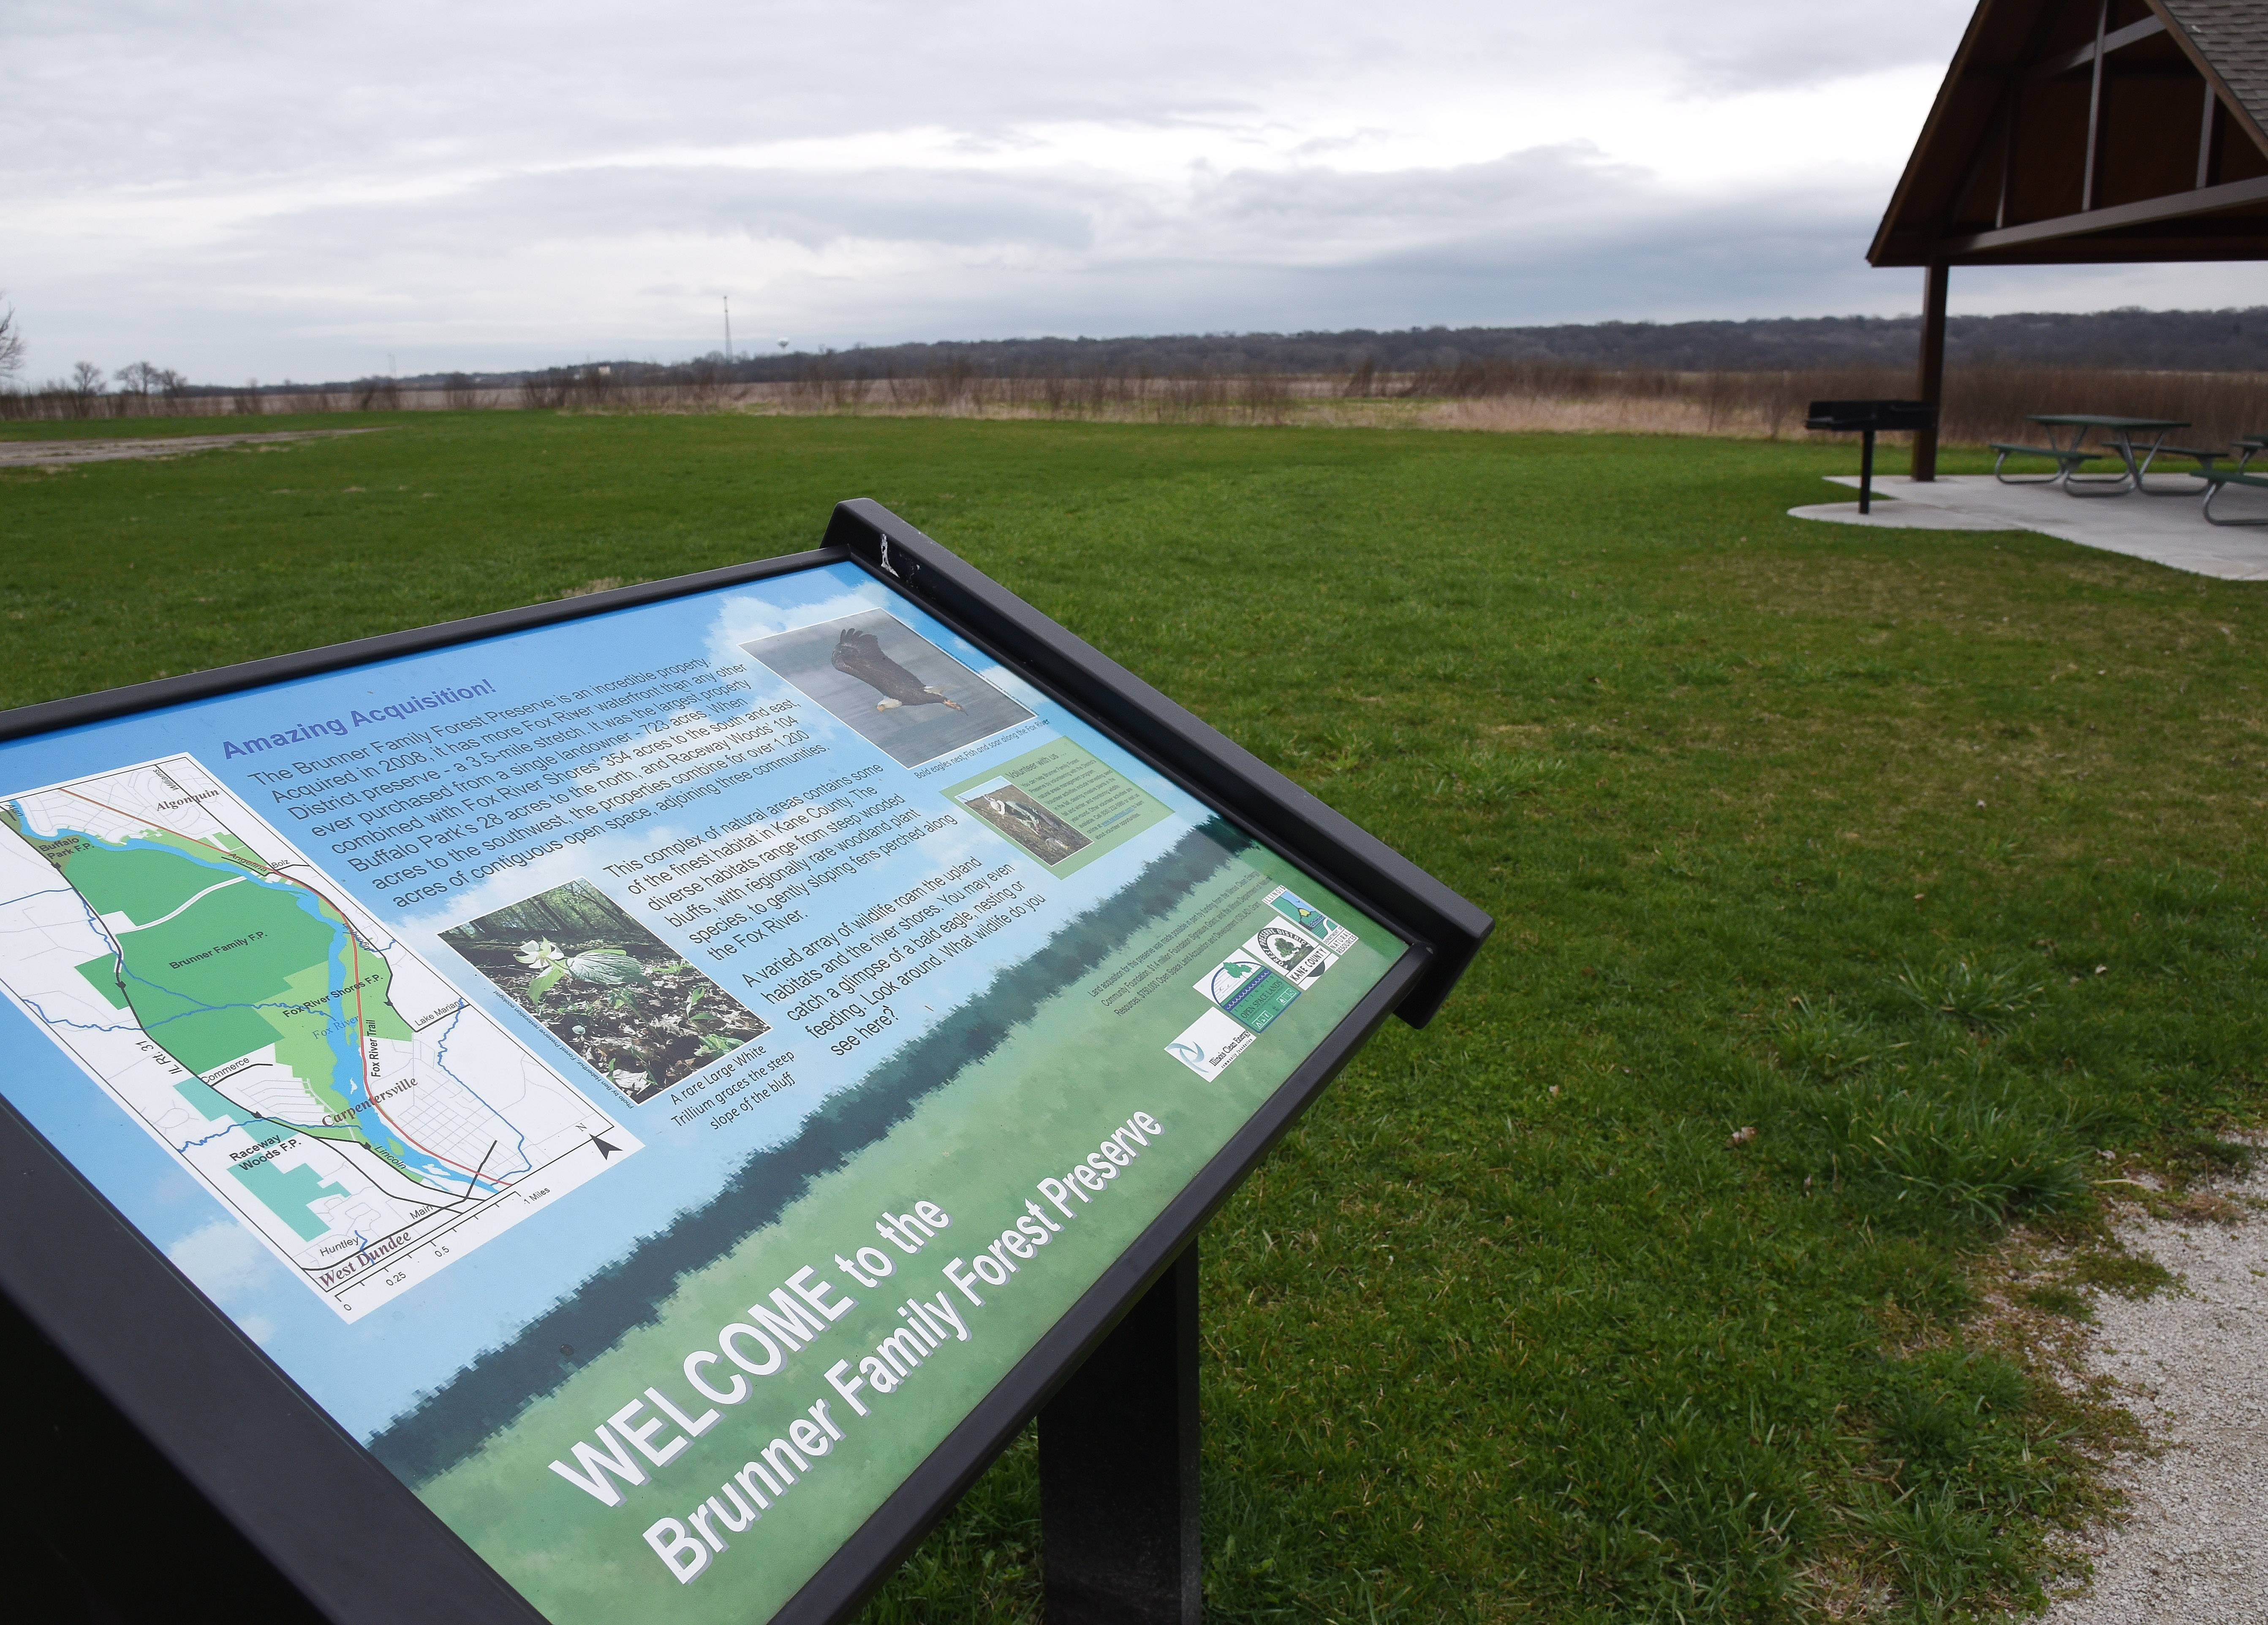 Brunner Family Forest Preserve in Carpentersville was a major recent acquisition by the Kane County Forest Preserve District, which was seeking voter approval to borrow $50 million to buy about 2,000 new acres.